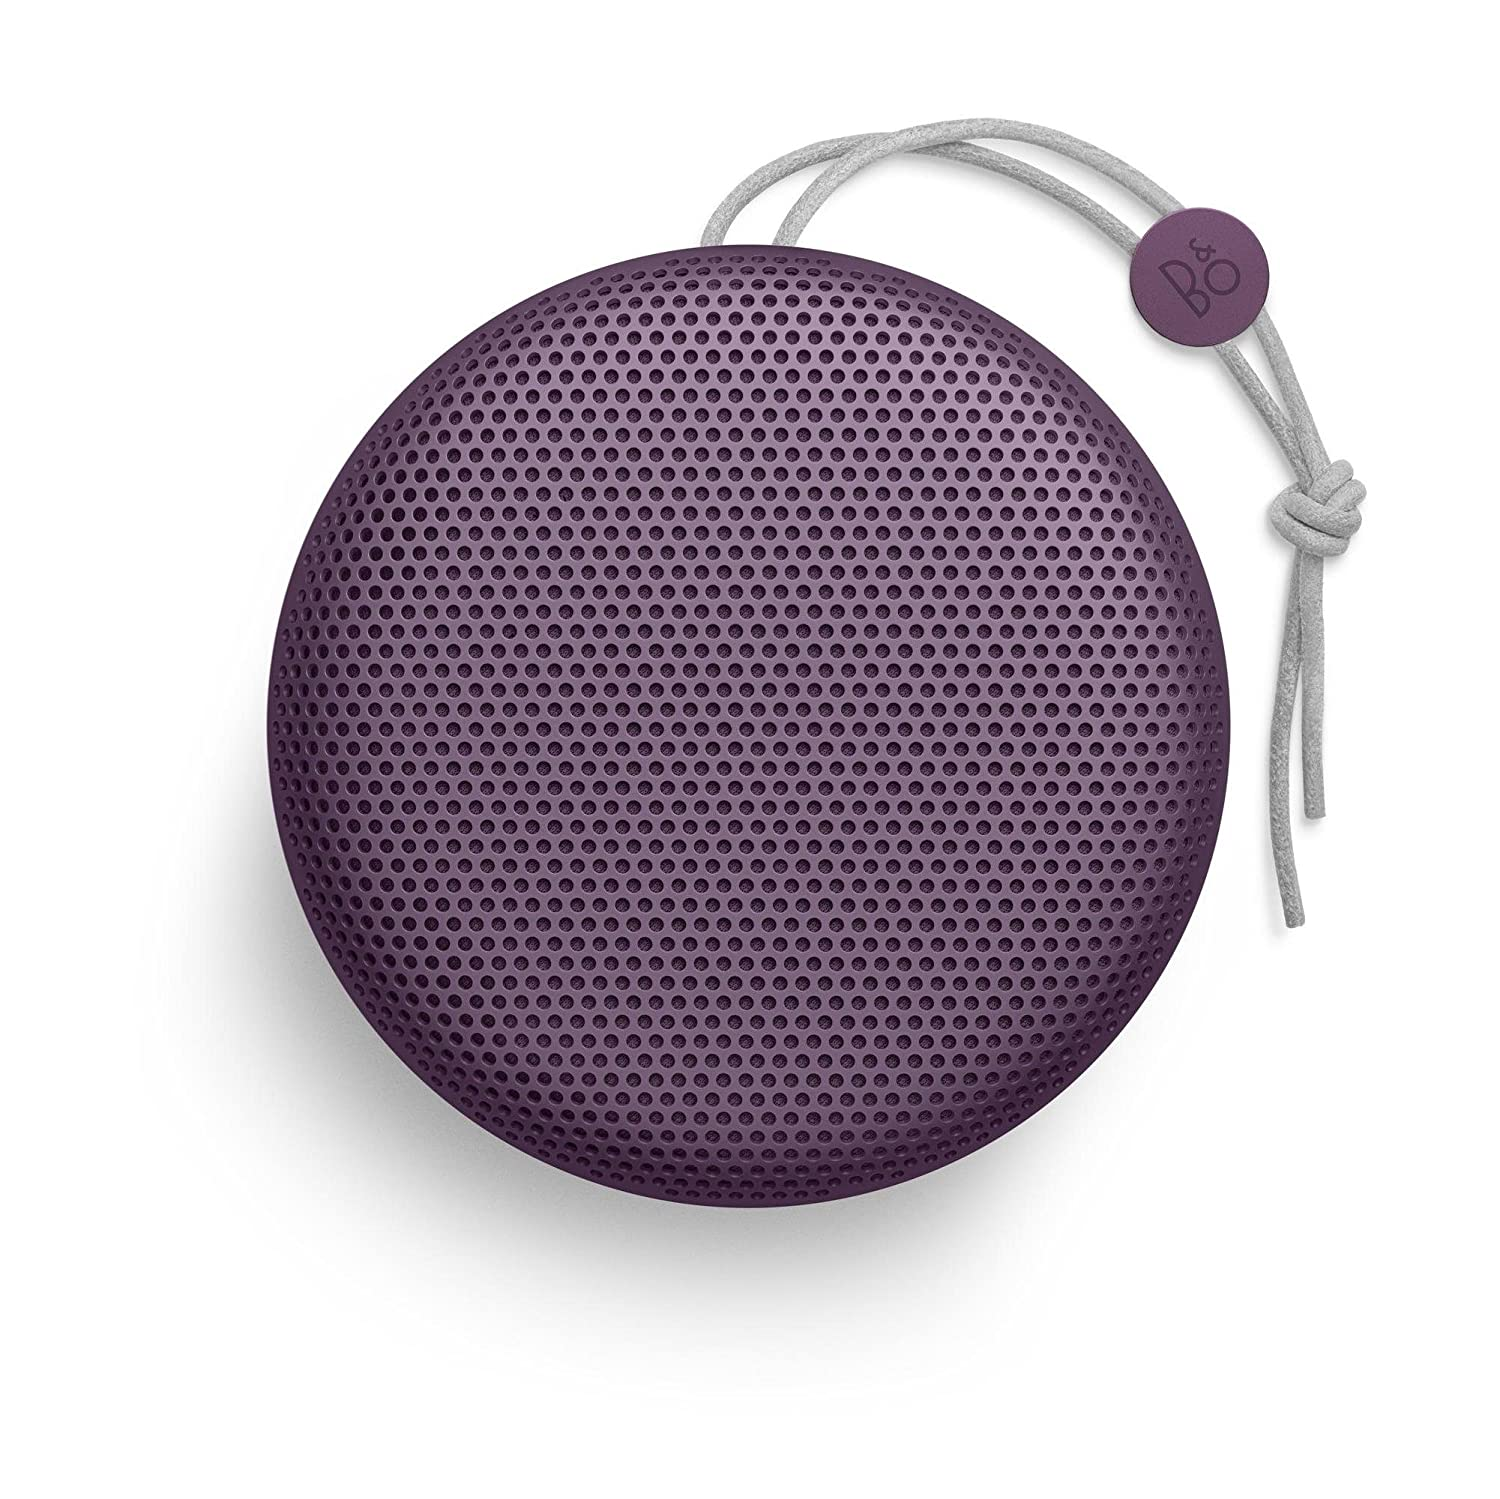 Bang & Olufsen Beoplay A1 Portable Bluetooth Speaker with Microphone - Natural B&O PLAY 1297846